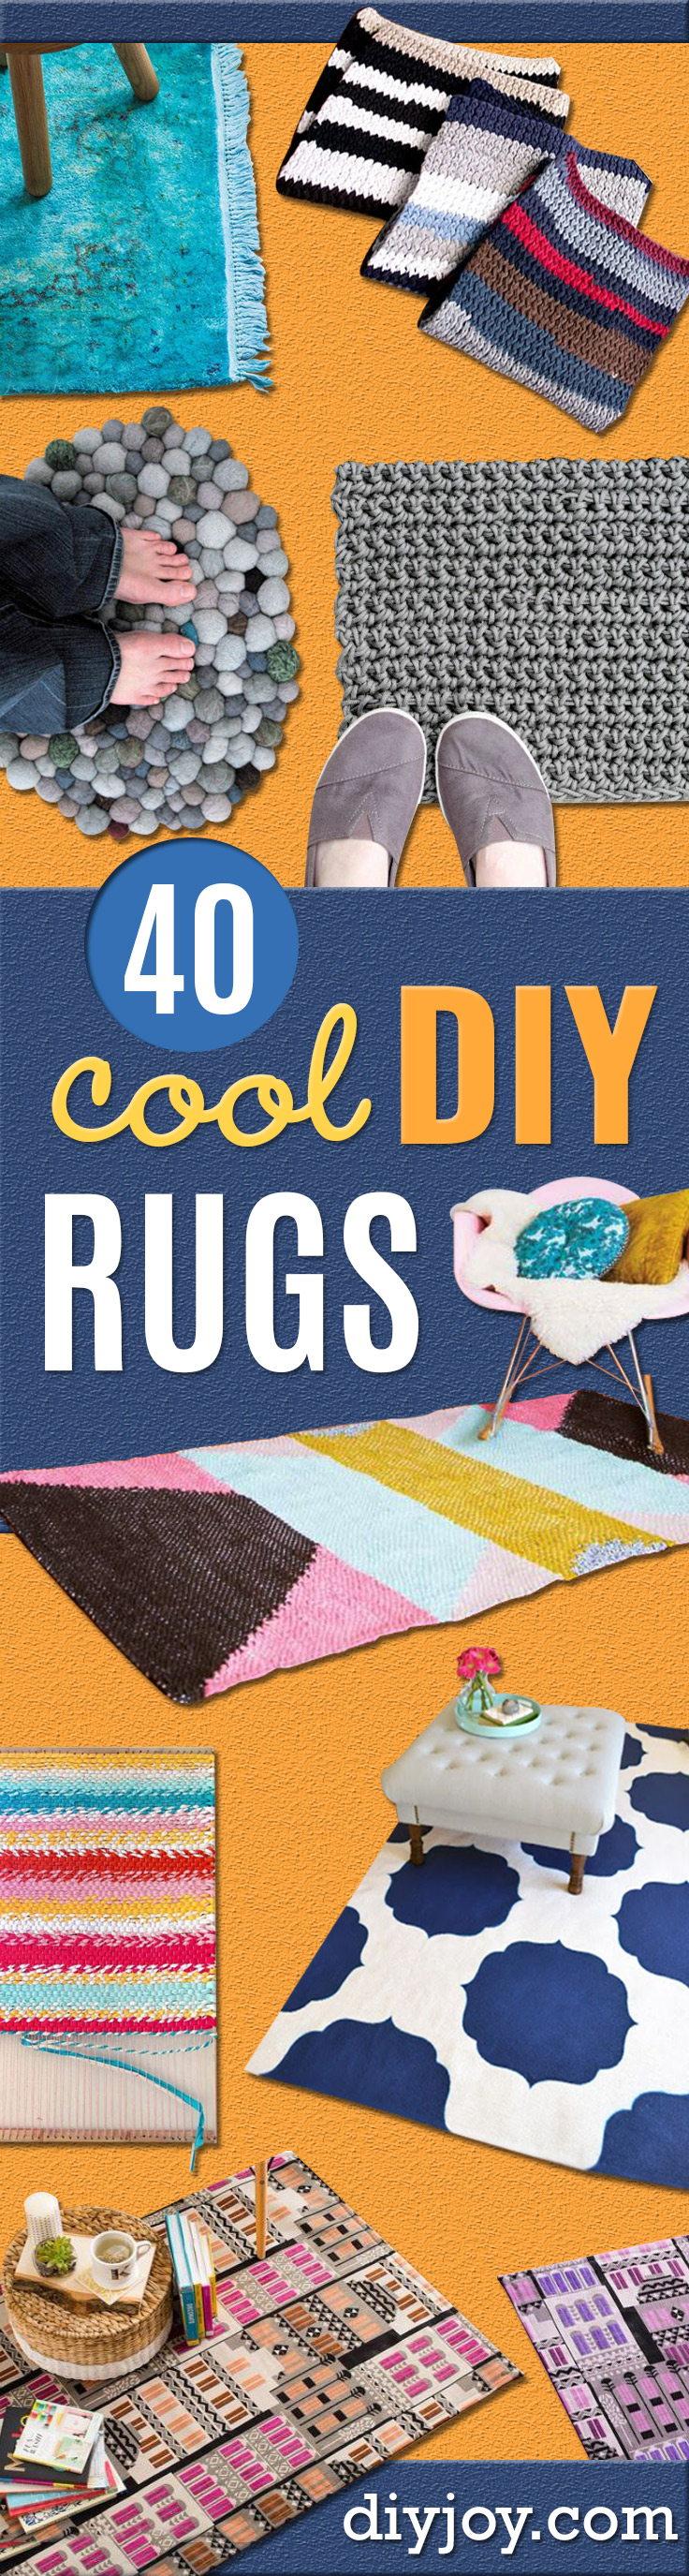 DIY Rugs - Cheap DIY Home Decor Ideas for An Easy Handmade Rug